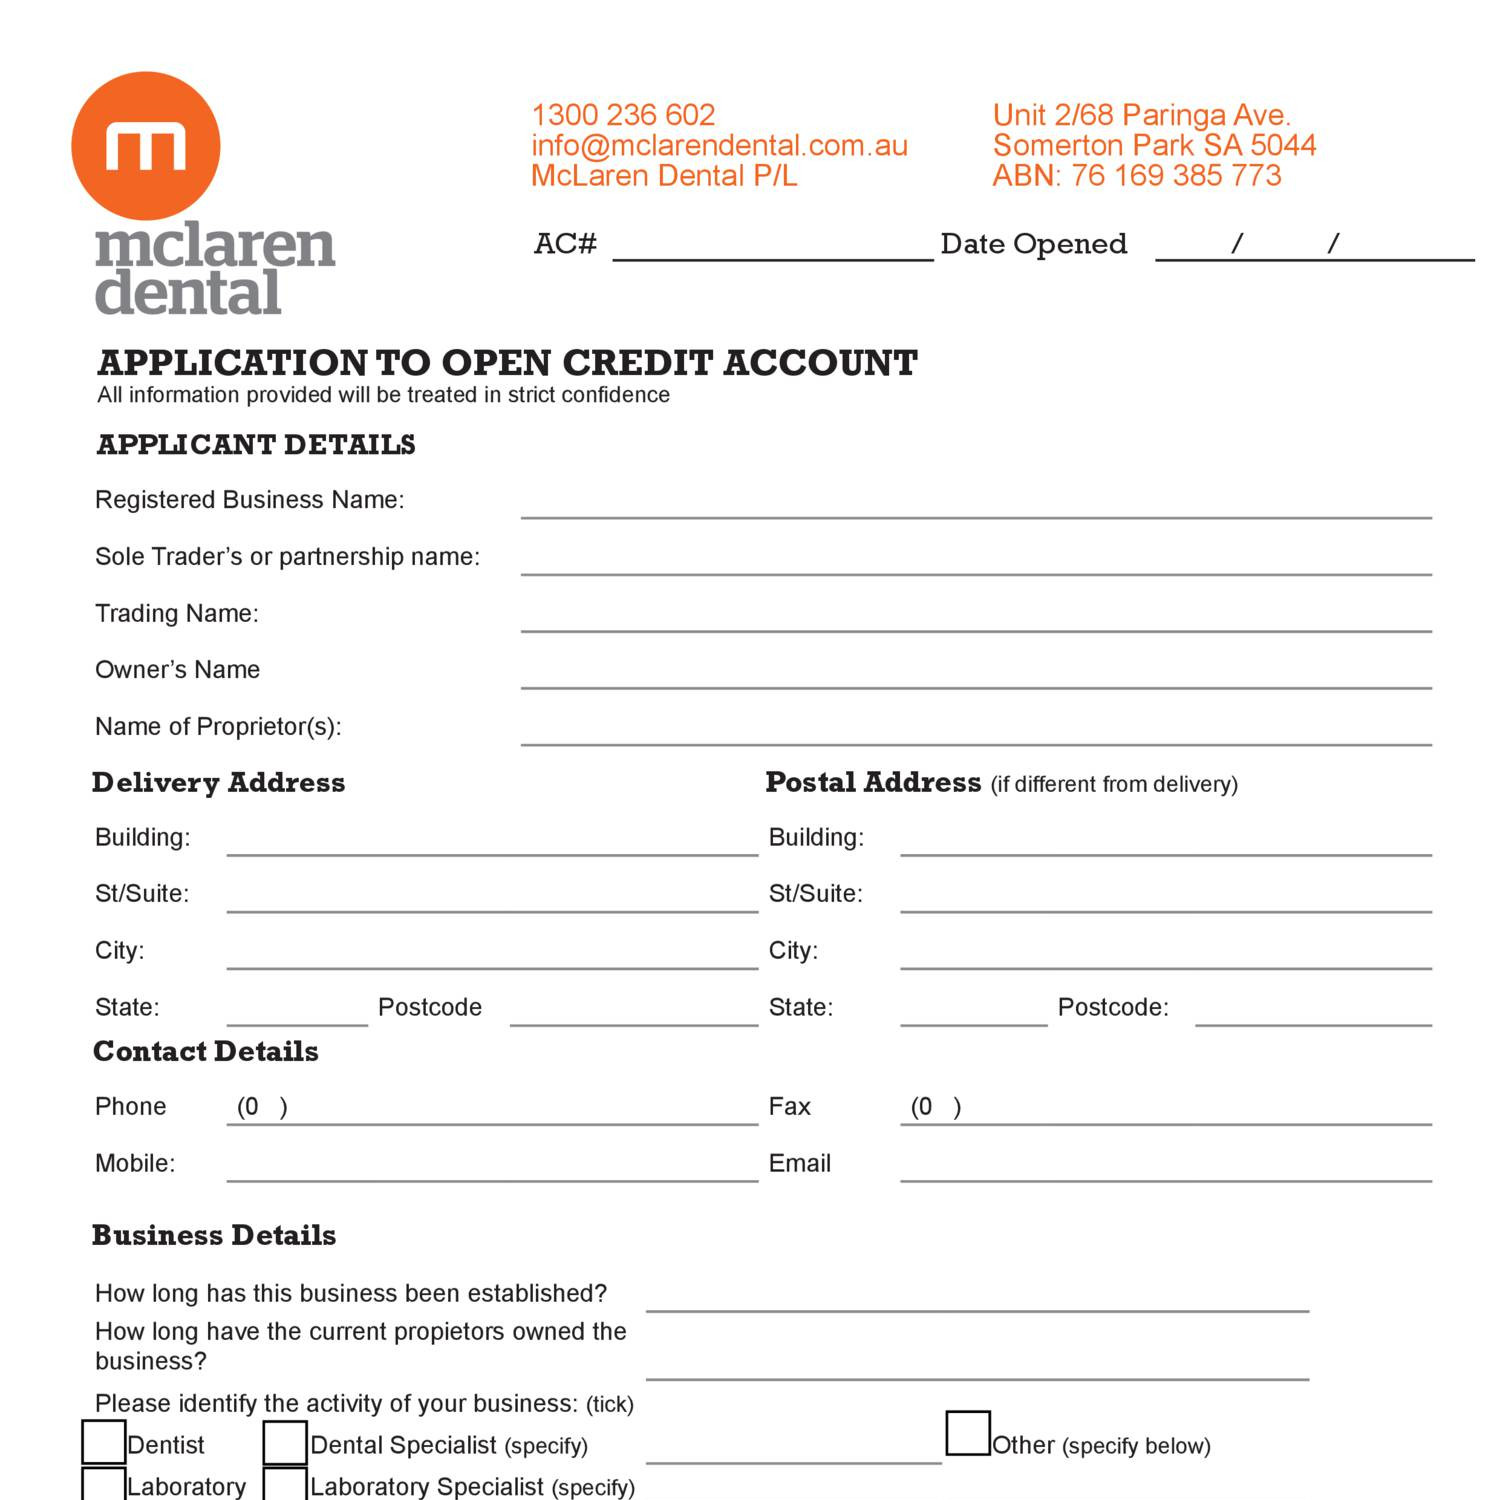 McLaren Dental Credit Application Form.pdf - DocDroid on travel forms, training forms, long term care forms, surgical forms, pharmacy forms, restaurant forms, chiropractic forms, massage forms, basic physical exam forms, insurance forms, gynecology forms, emergency forms, medical forms, wellness forms, anesthesia forms, veterinary forms, army periodic health assessment forms, internet forms, std forms, optometry forms,